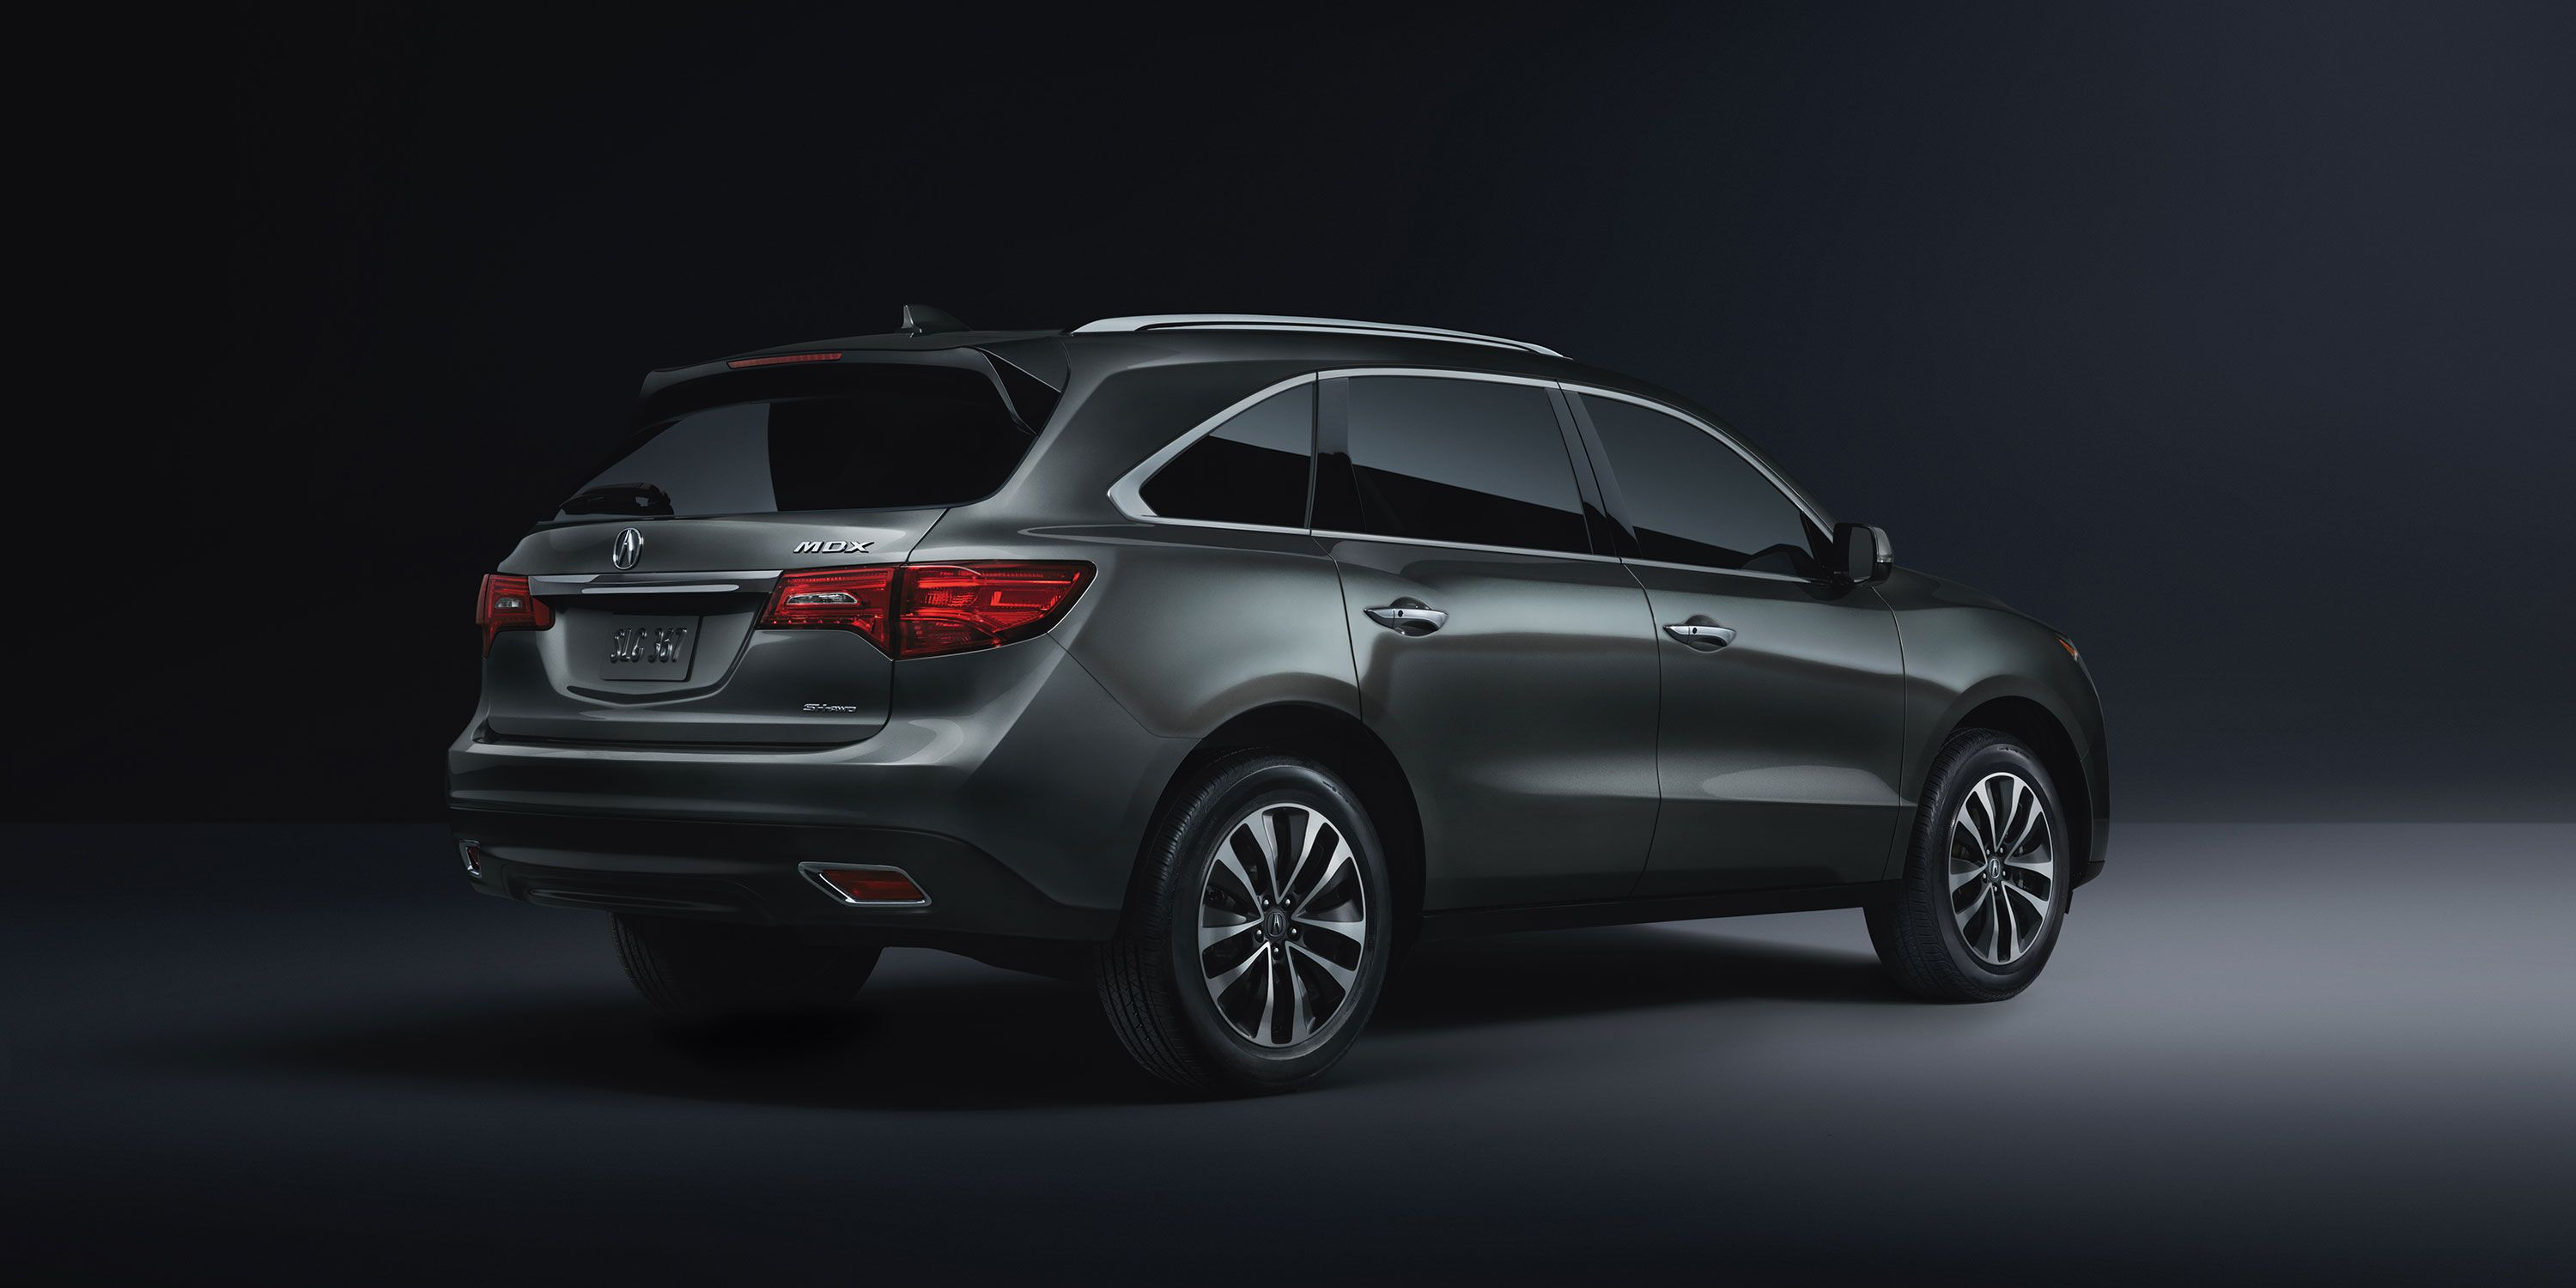 The All New 9 Speed Automatic Transmission With Sequential Sportshift Paddle Shifters Is Extraordinarily Smooth Just Like The 3 5 Acura Mdx Suv For Sale Acura